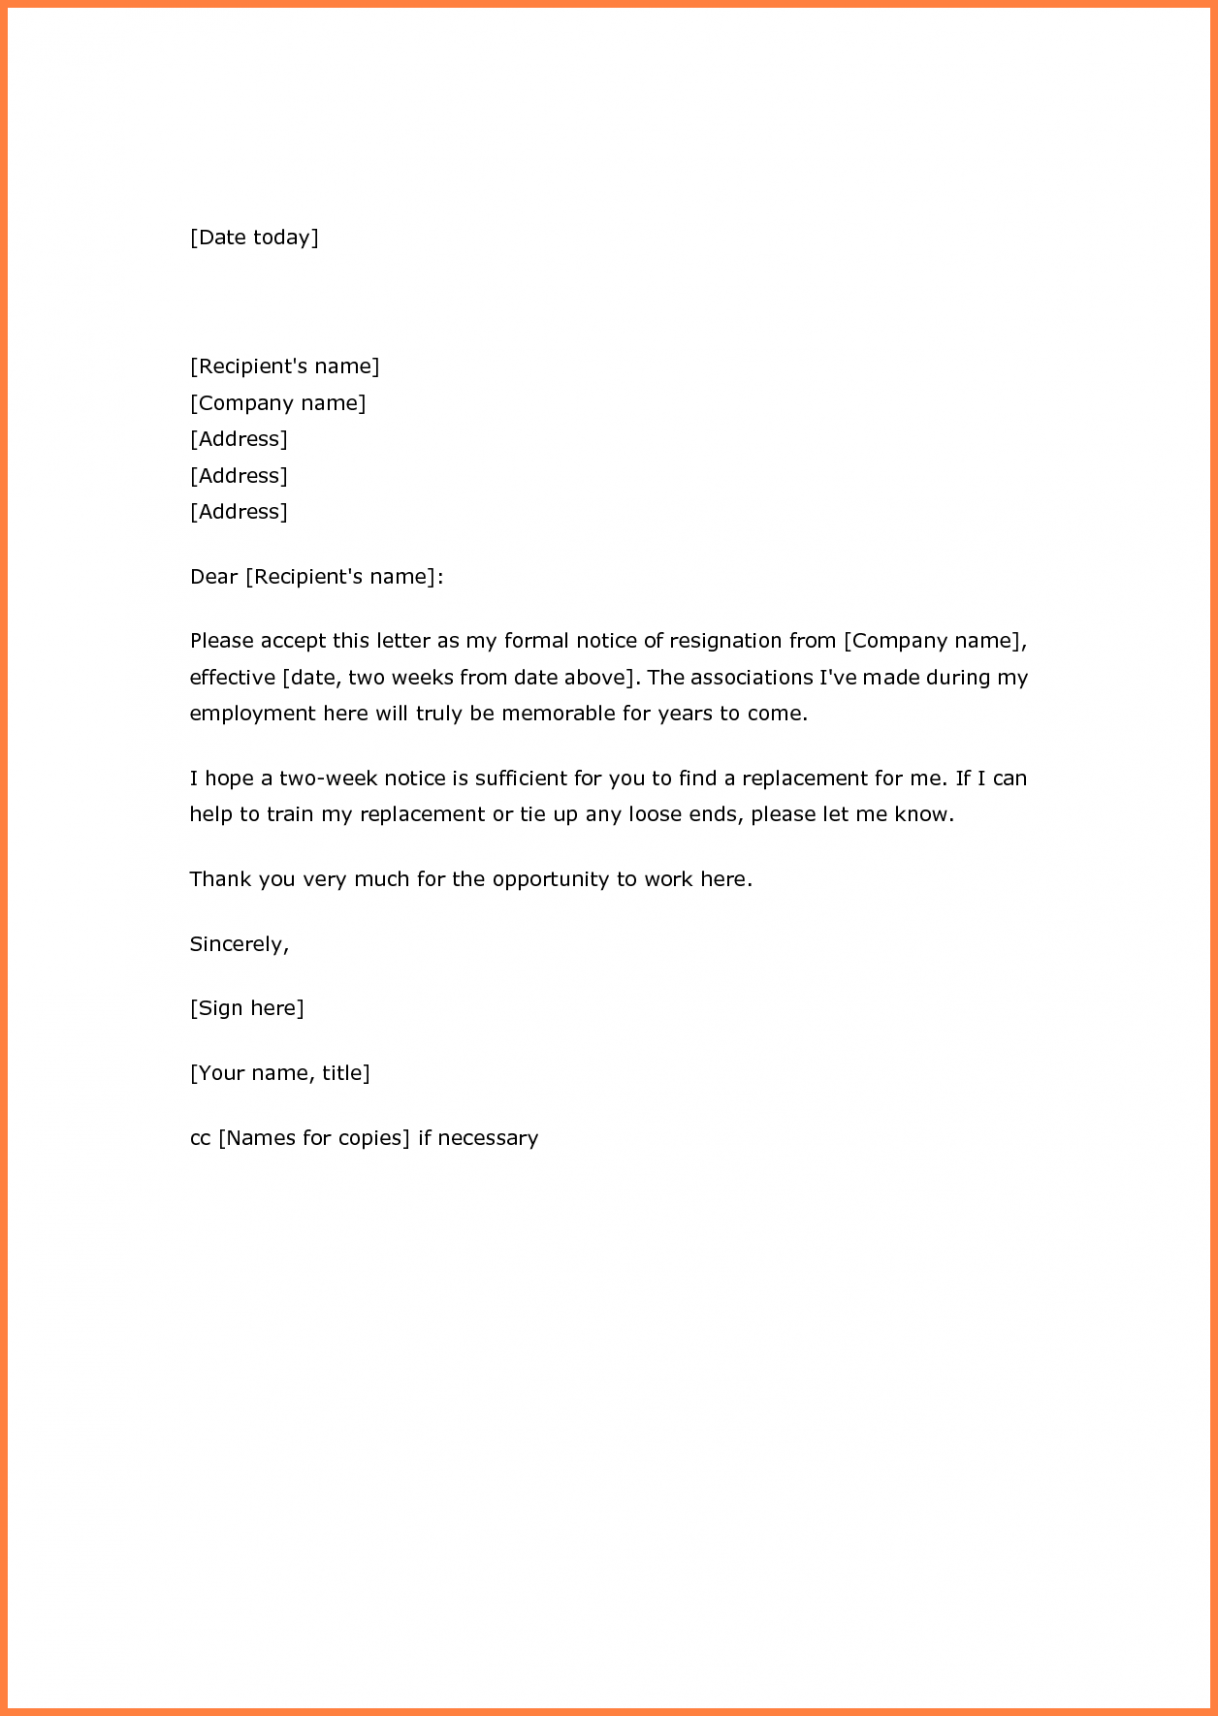 resignation letter template 3 weeks notice why you should steps to create resume in ms word summary for job change career objective safety professional